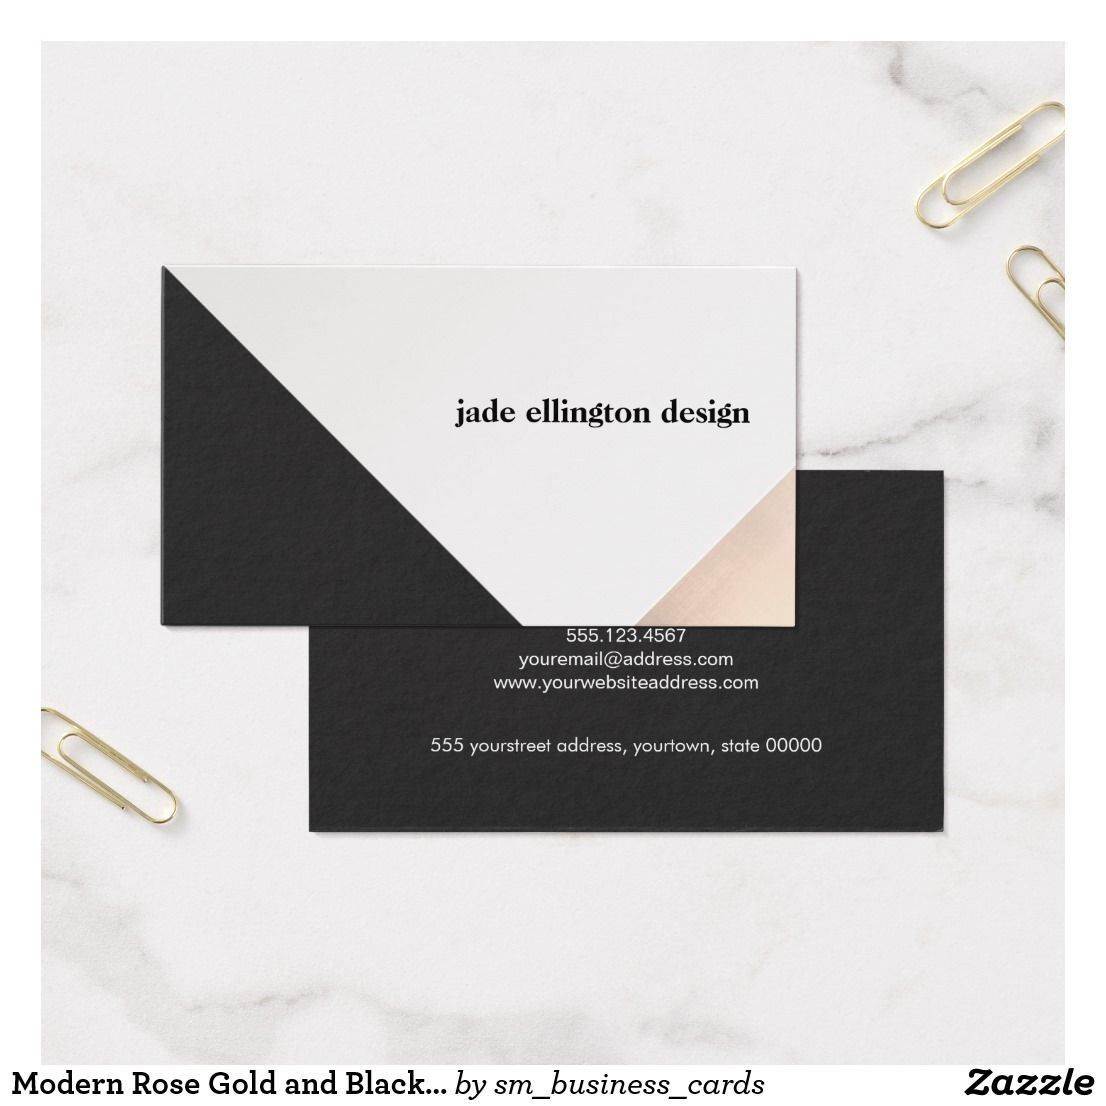 Modern rose gold and black abstract geometric business card modern rose gold and black abstract geometric business card reheart Choice Image